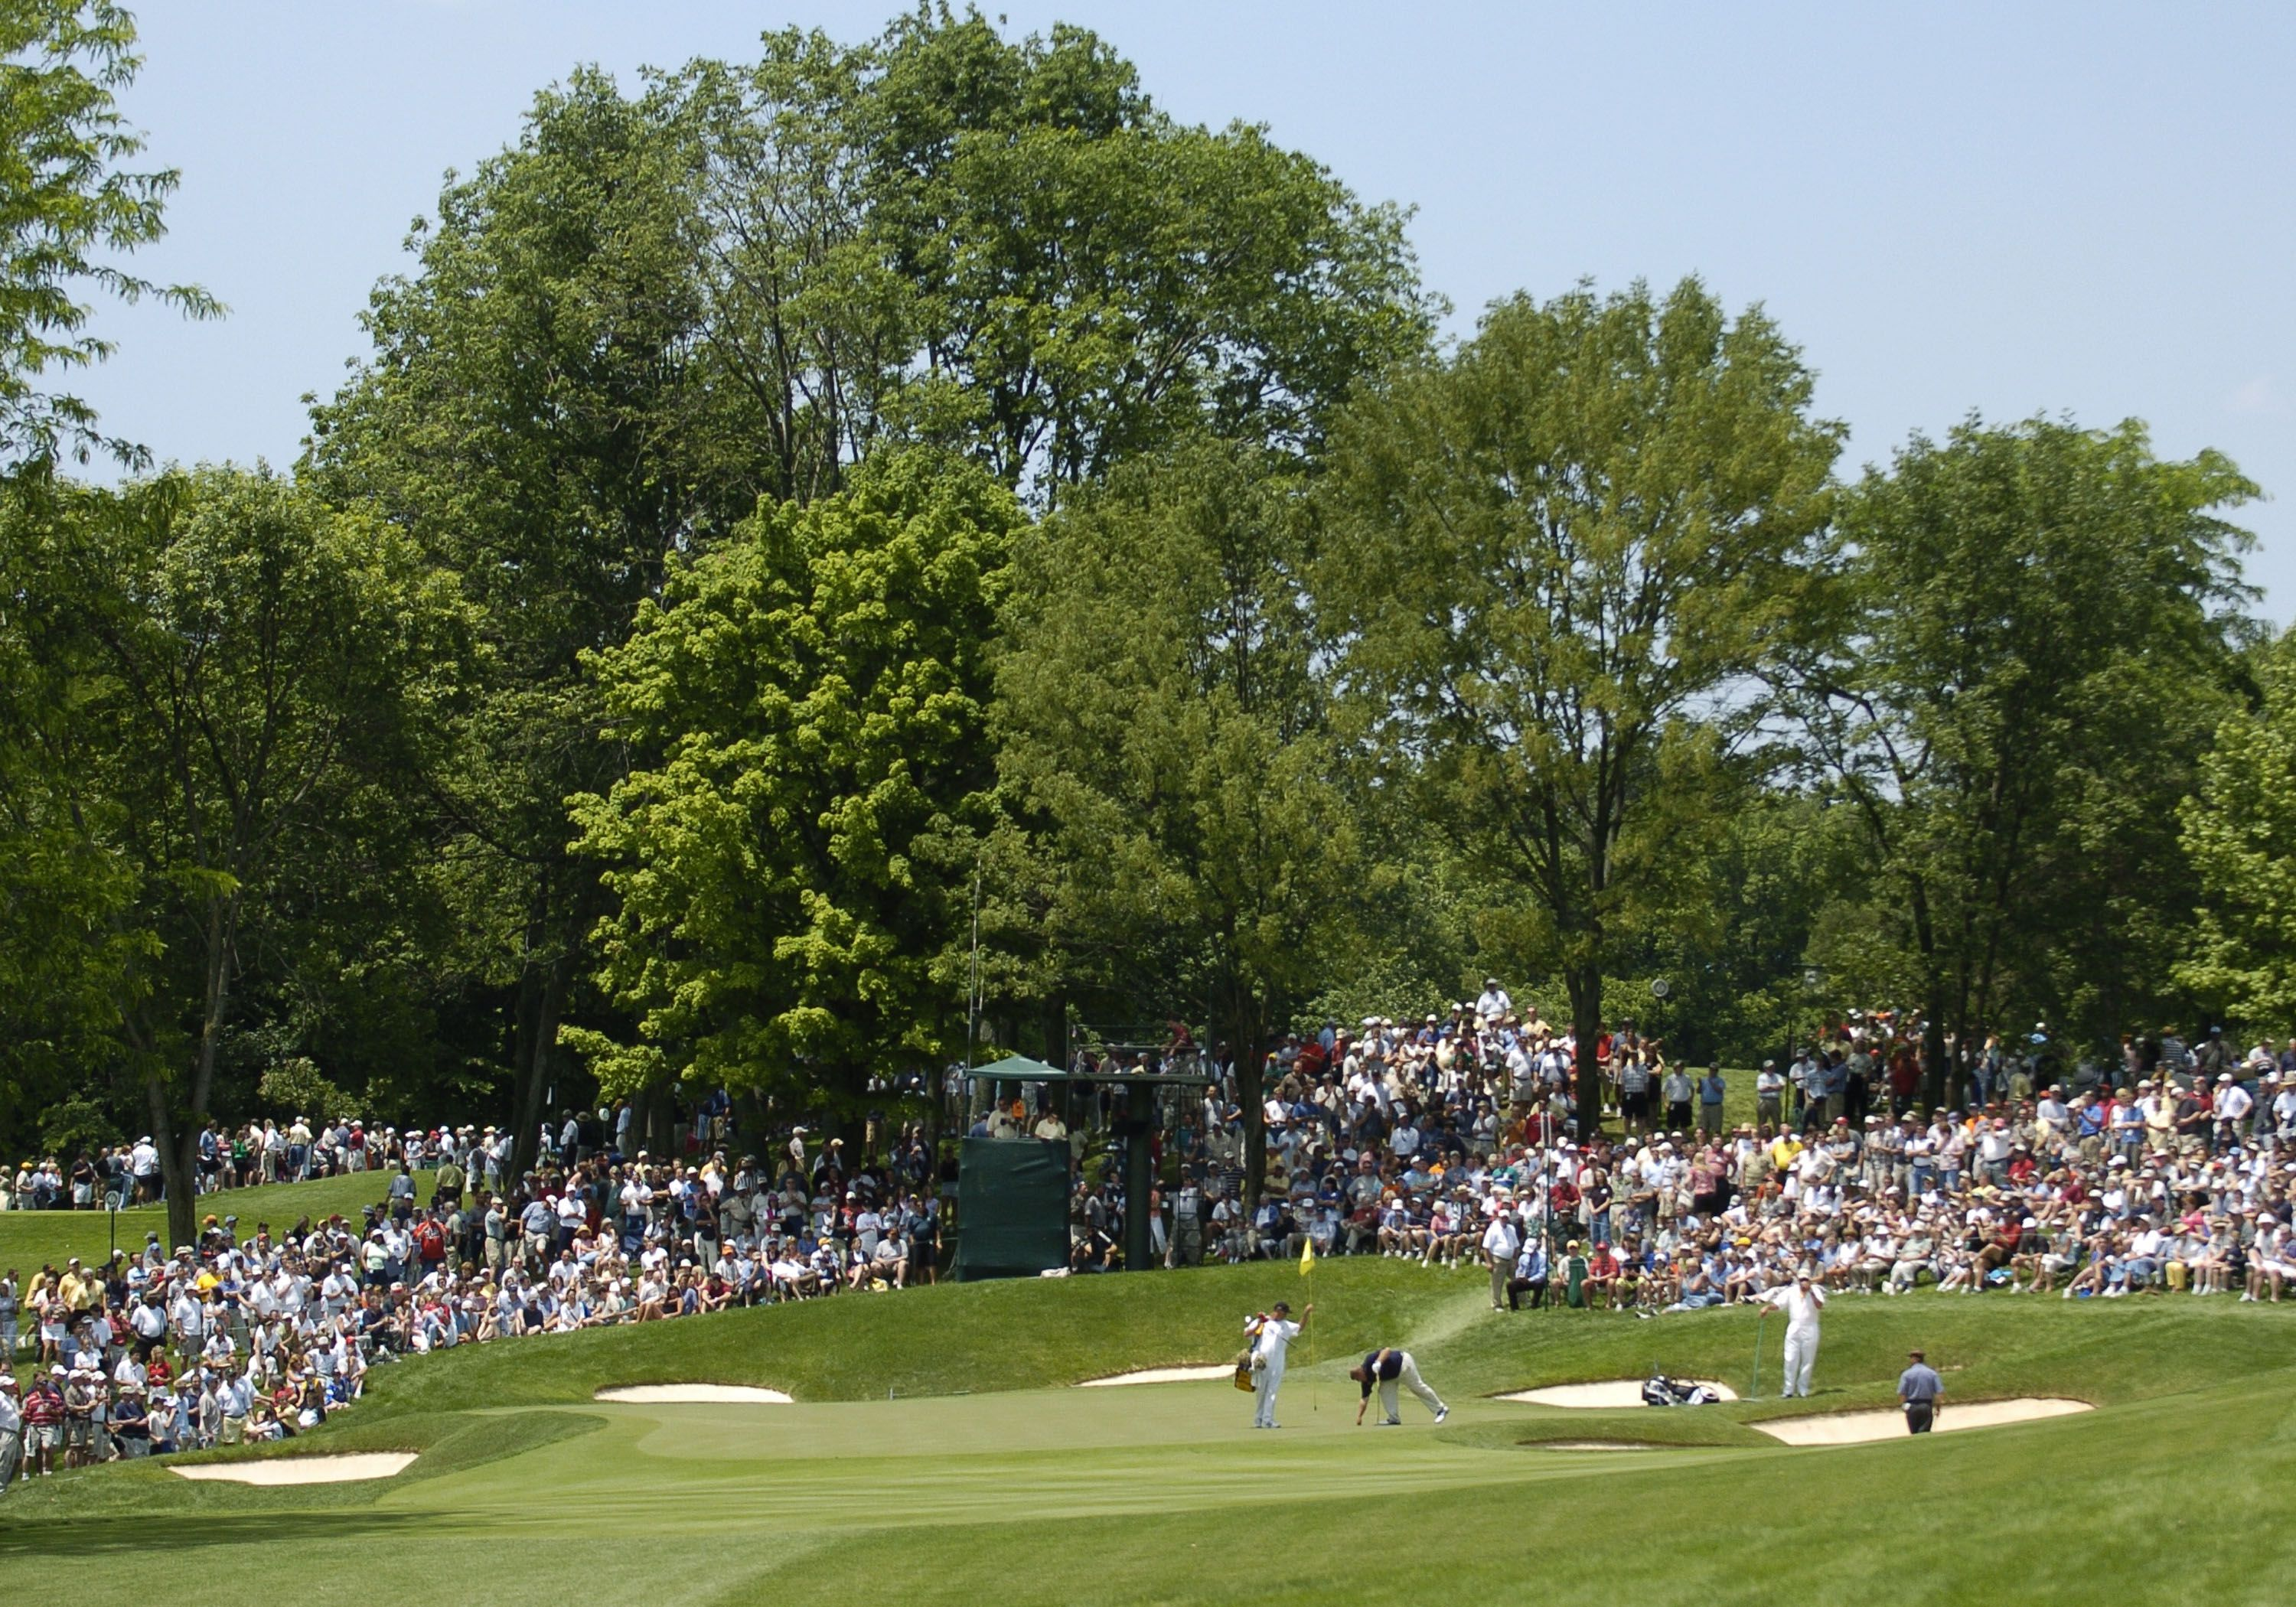 A view of the fourth green at Muirfield Village Golf Club.